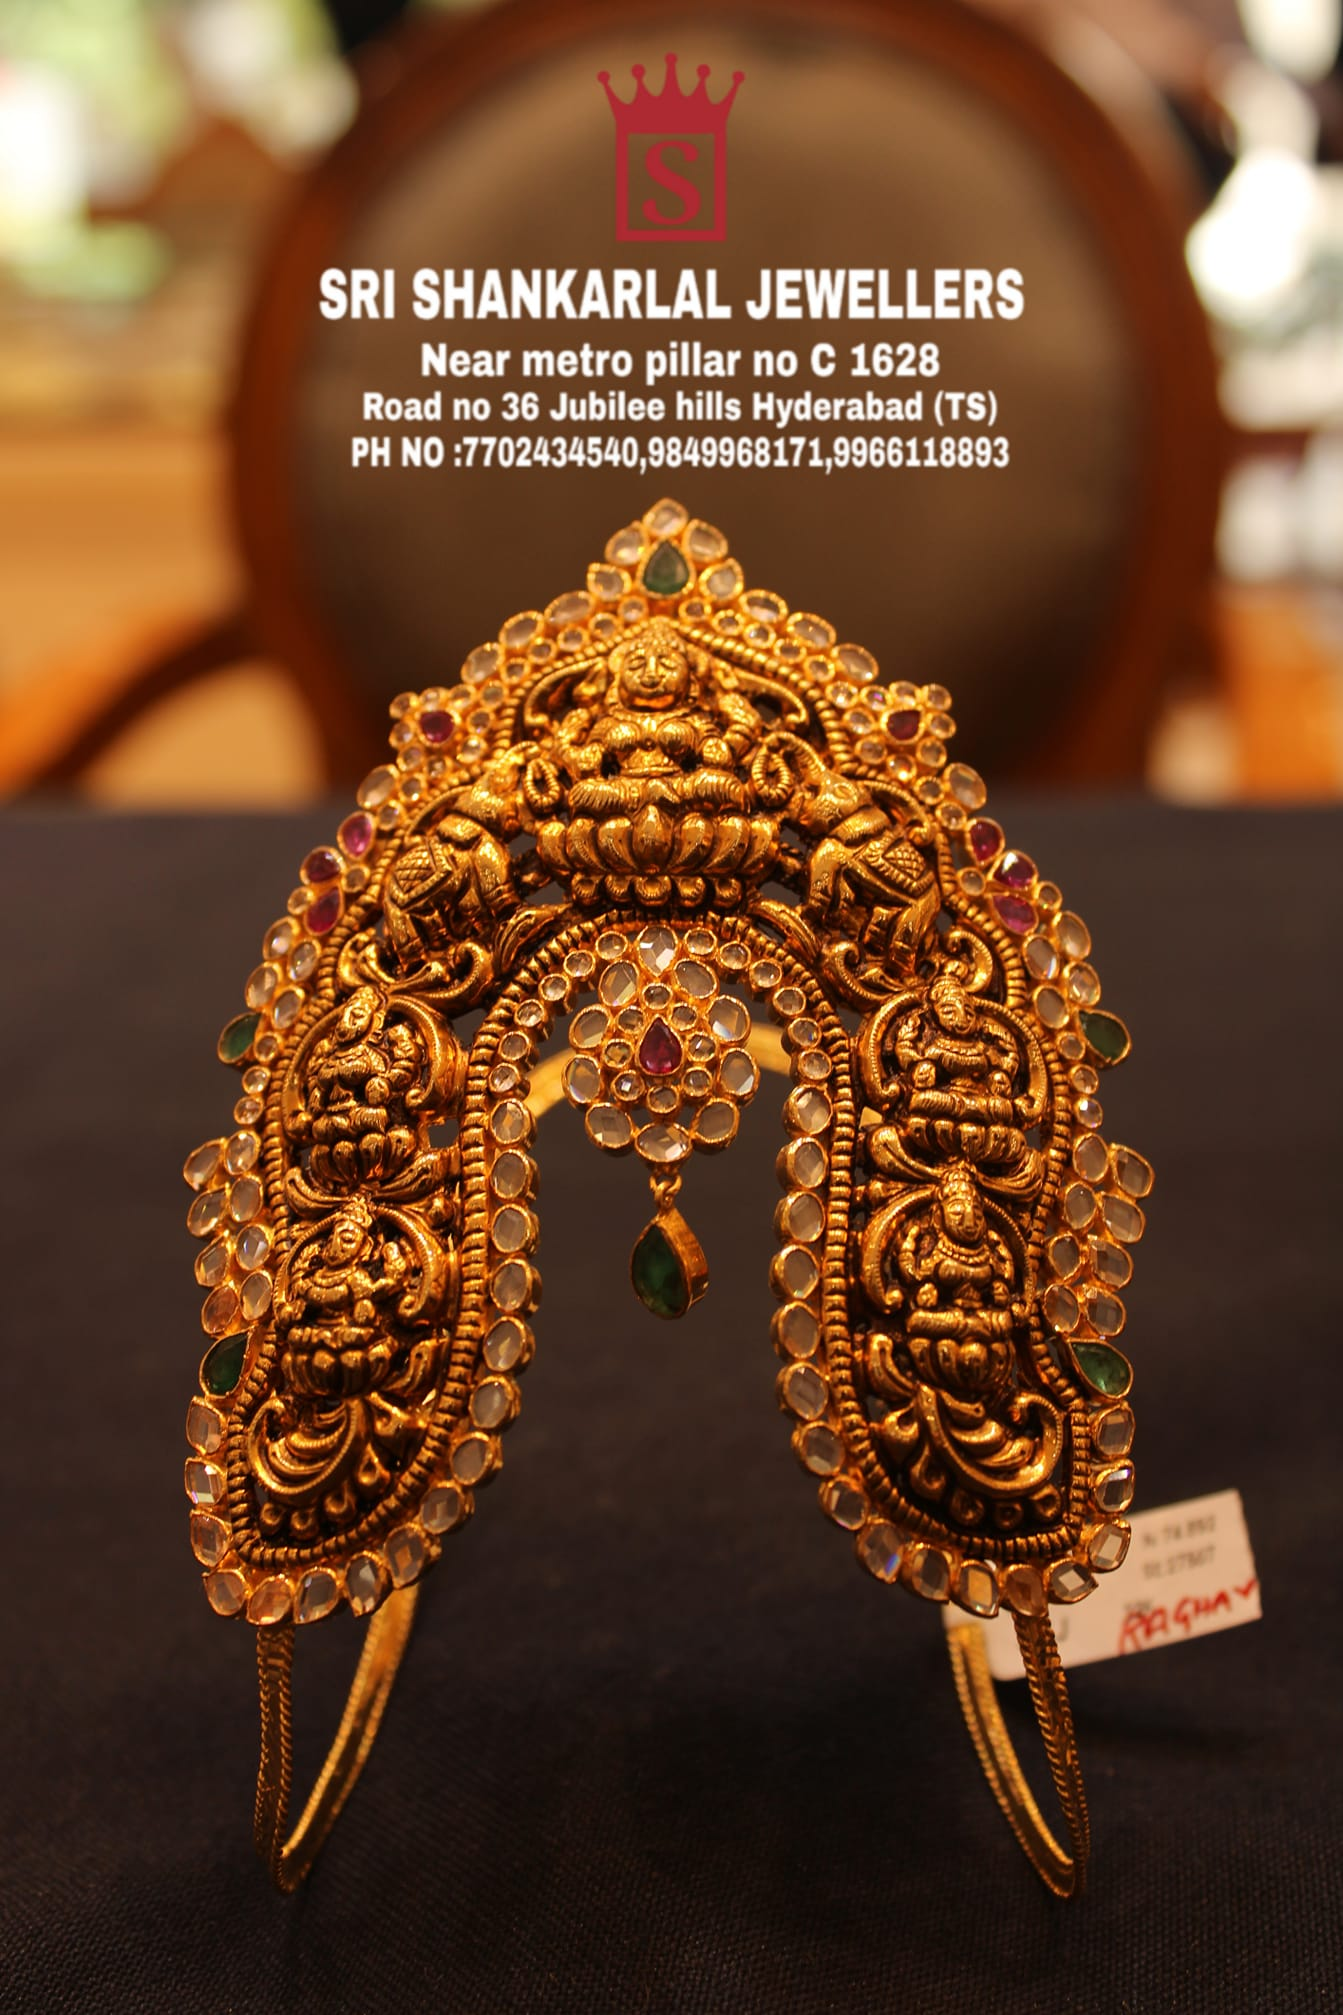 Latest Nakshi vanki in light weight and heavy looking JEWELLERY and vast collection Please visit  on video call pH no 7702434540  9849968171   9966118893 to see more collection 2021-06-30